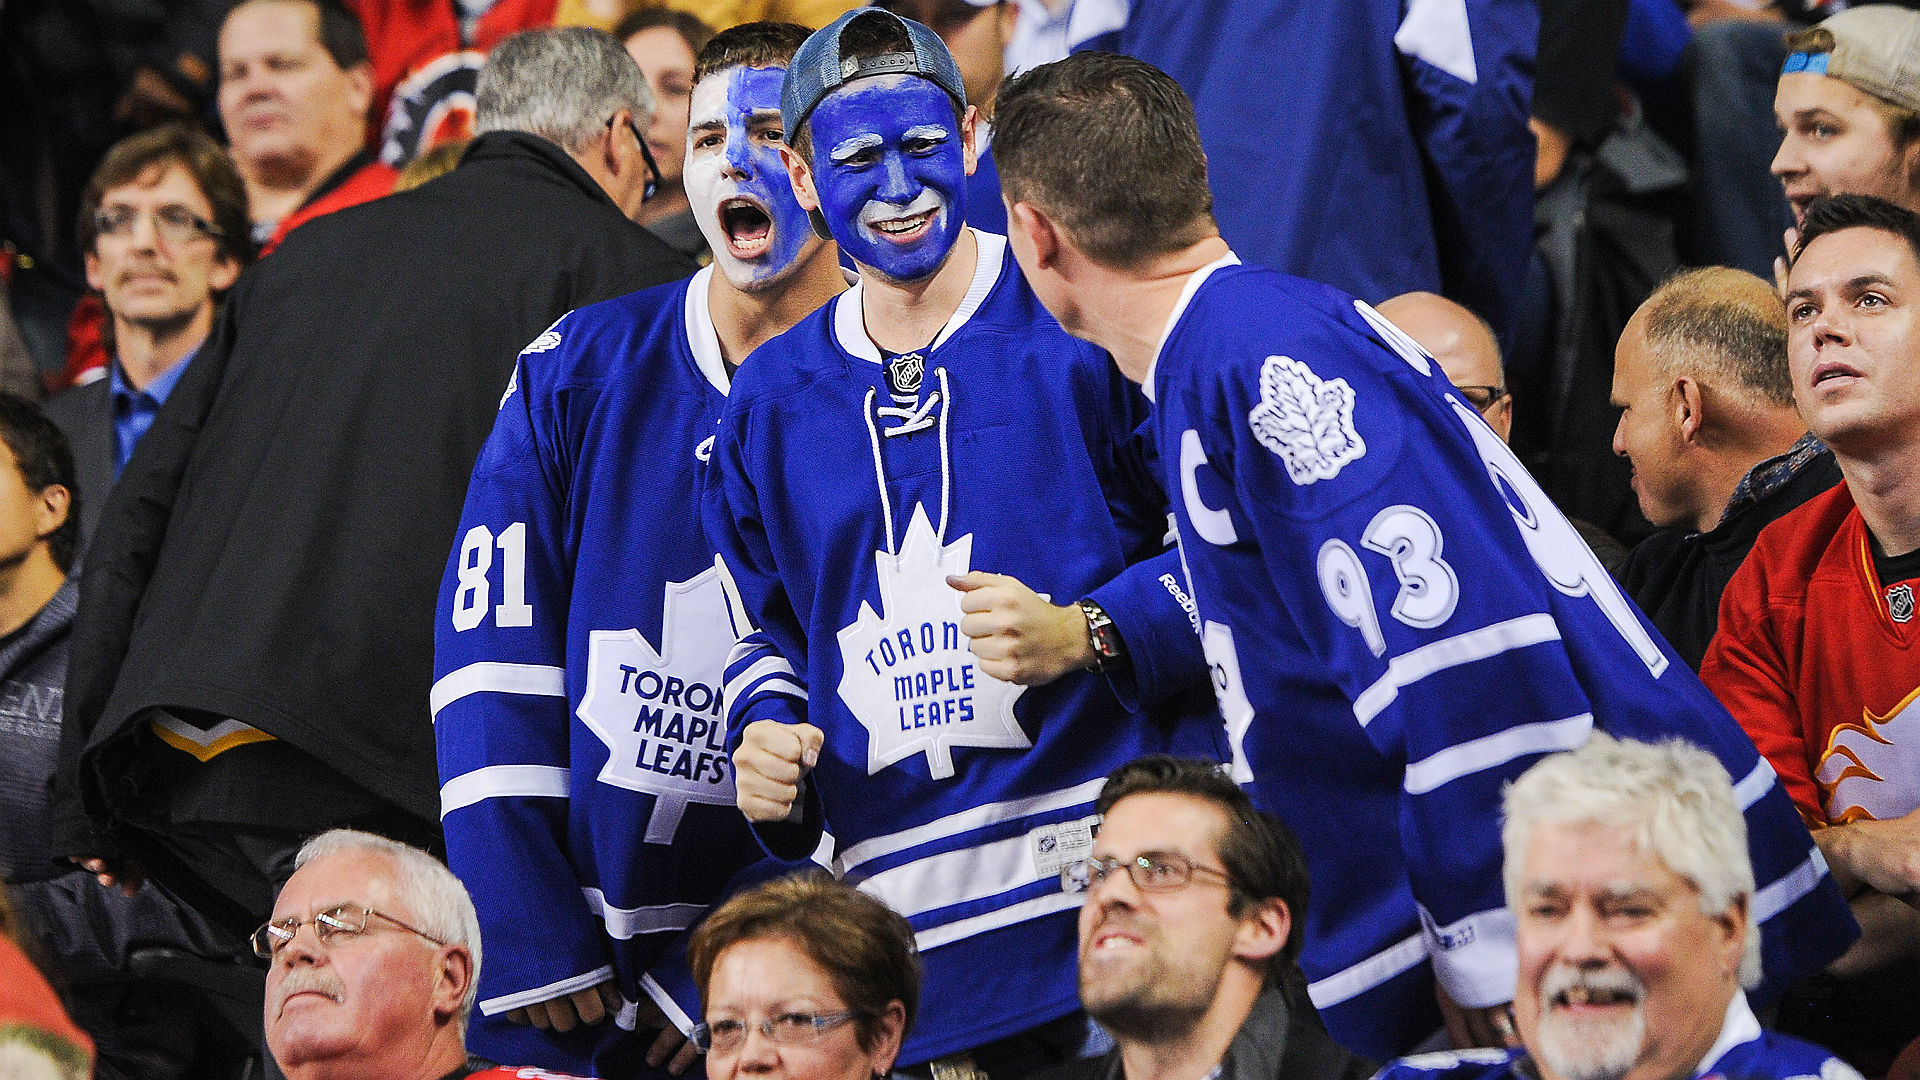 Most intimidating fans in the nhl